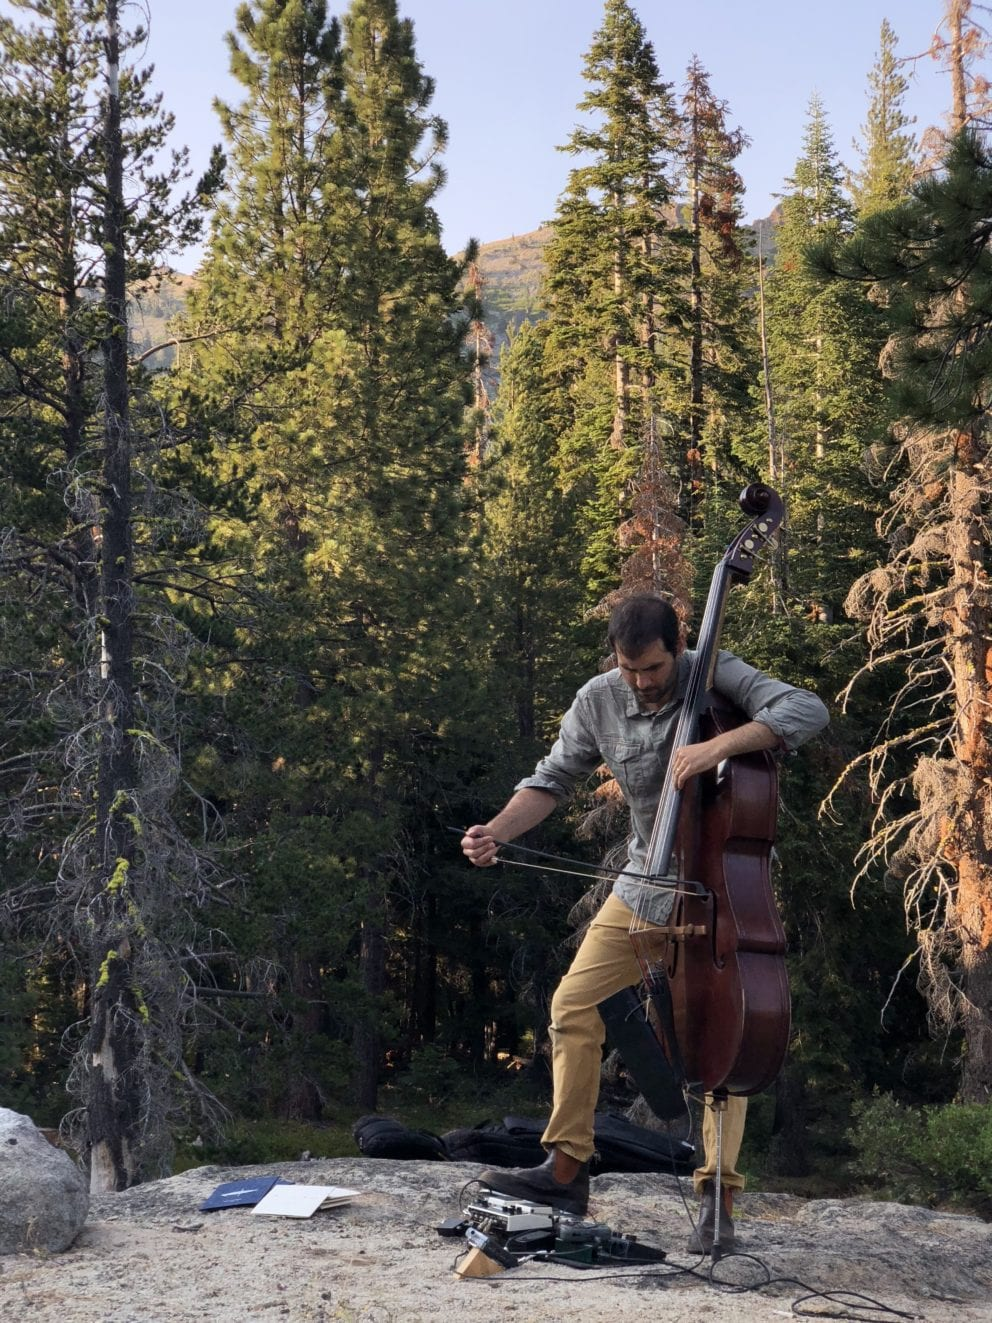 man playing upright bass in woods surrounded by trees